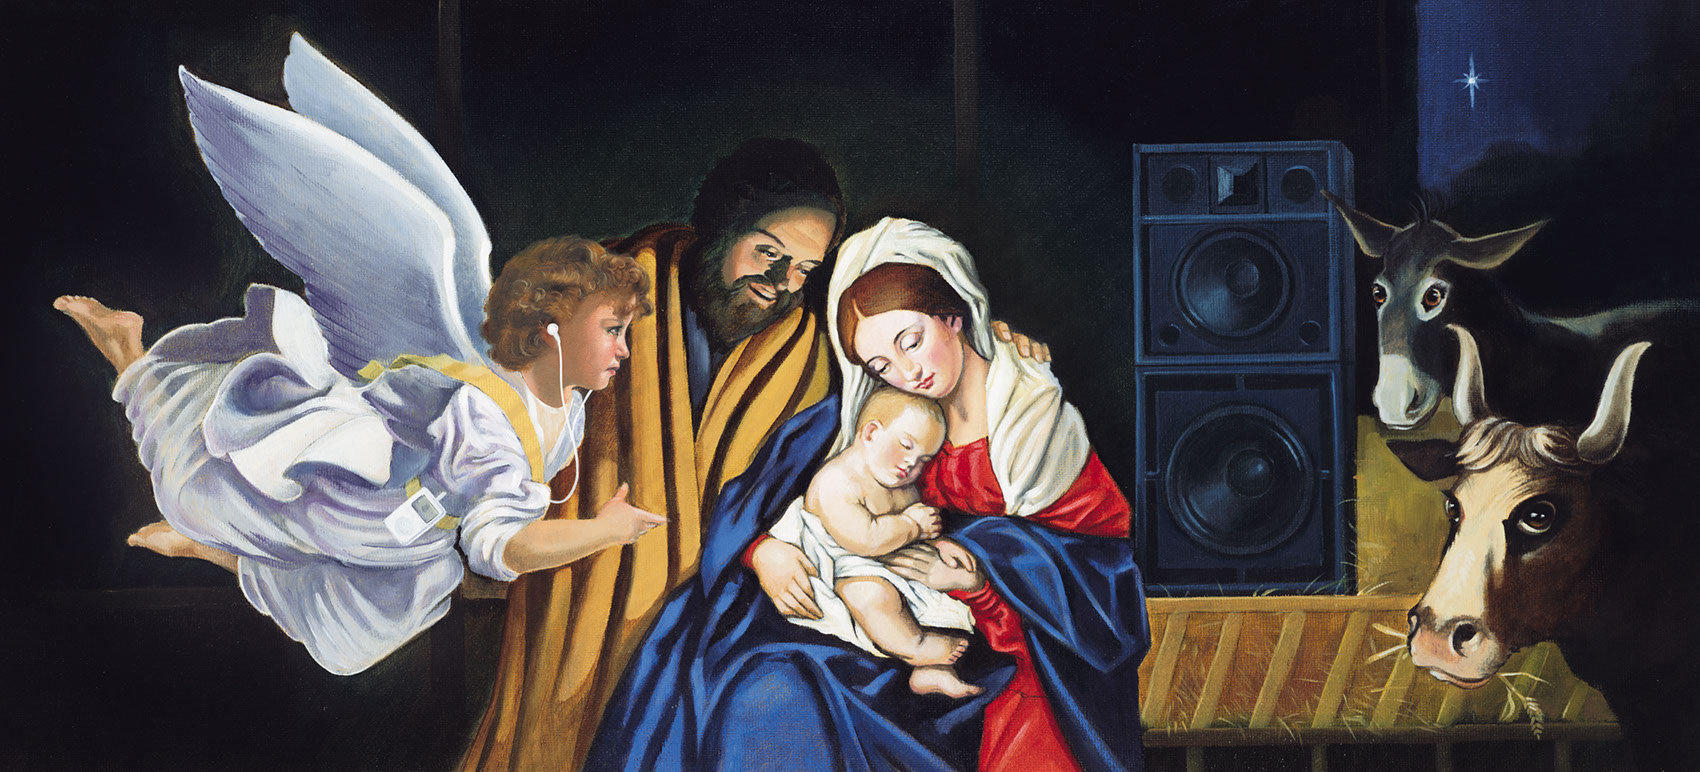 illustration-Retro_Ipods and speakers at the birth of jesus-Pastiche